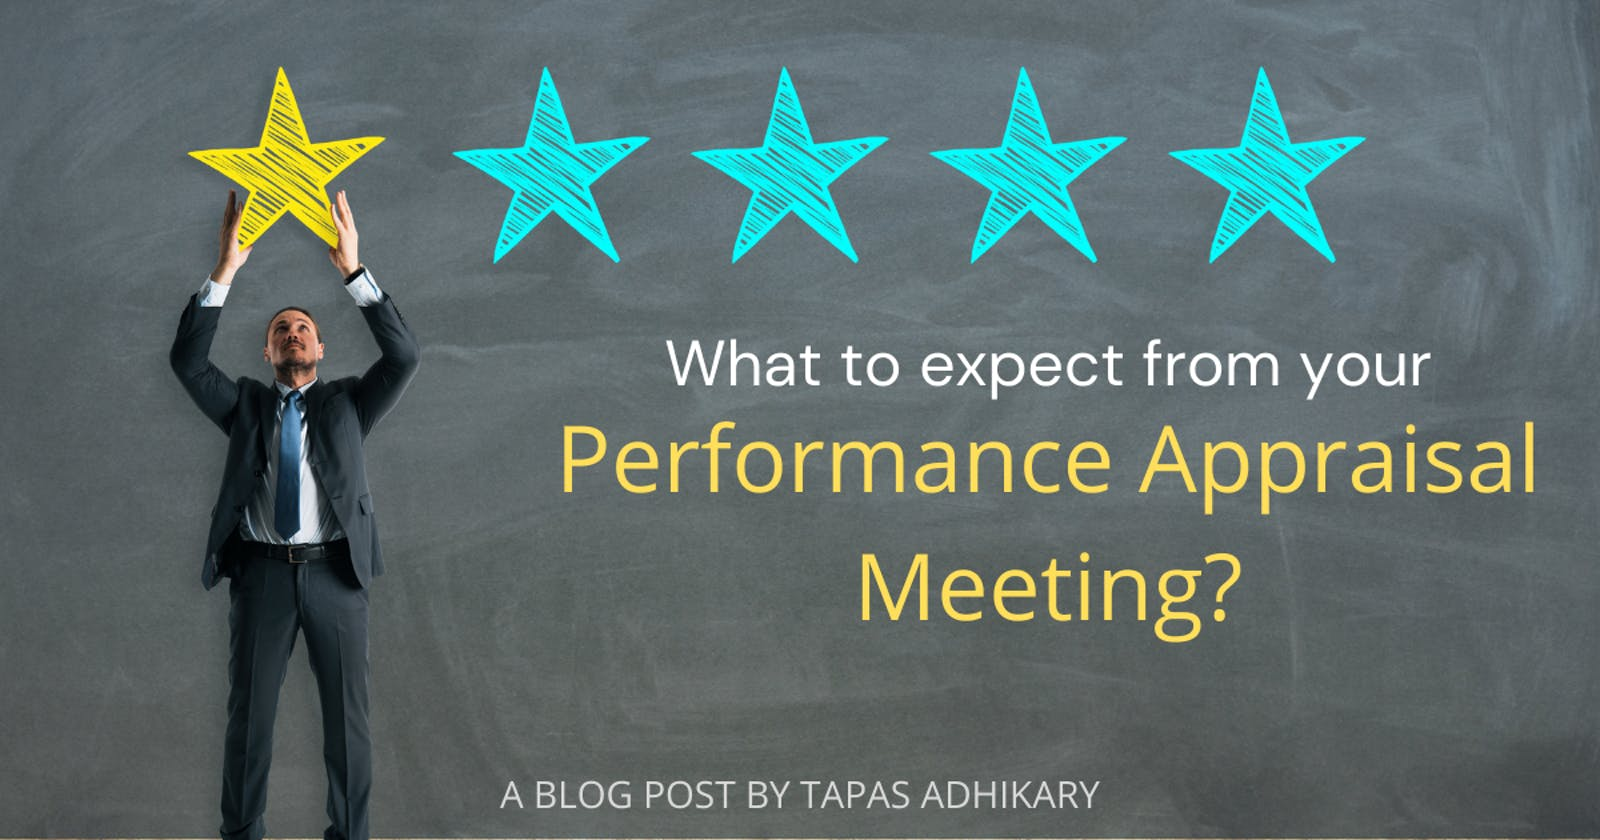 What to expect from your performance appraisal meeting?